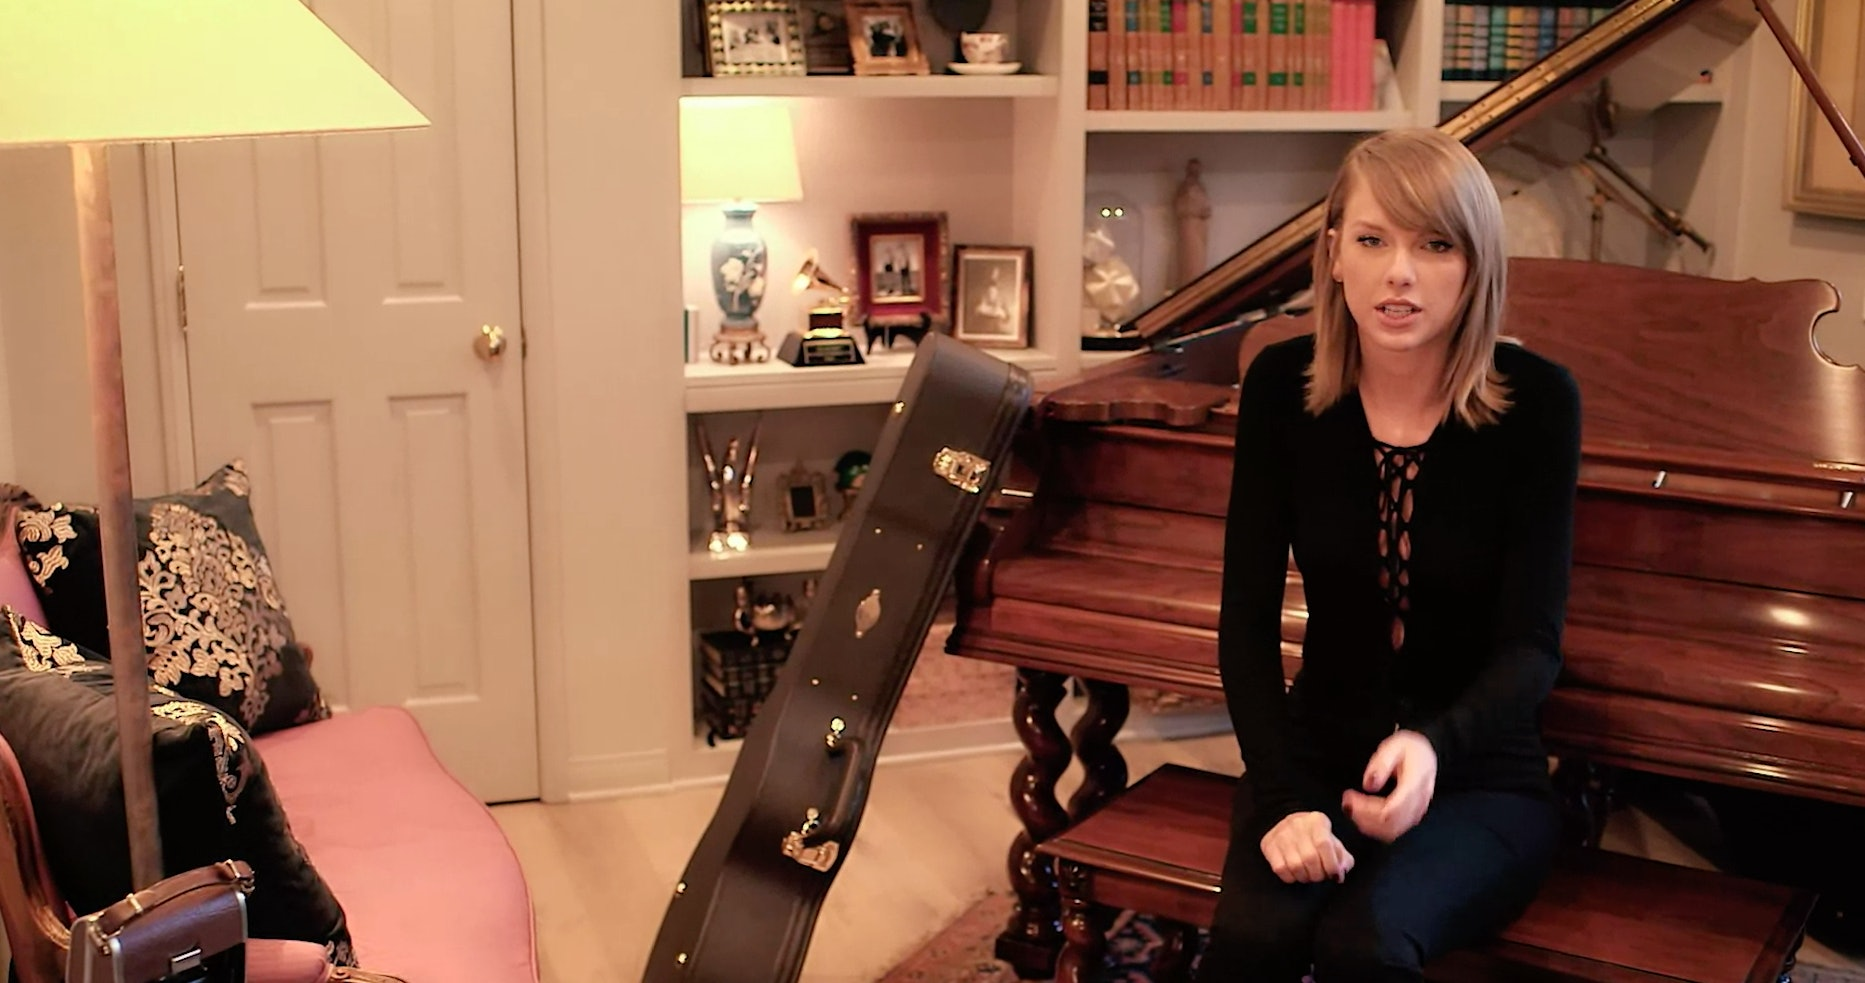 Taylor Swift S House Tour Reveals 19 Incredibly Cool Things She